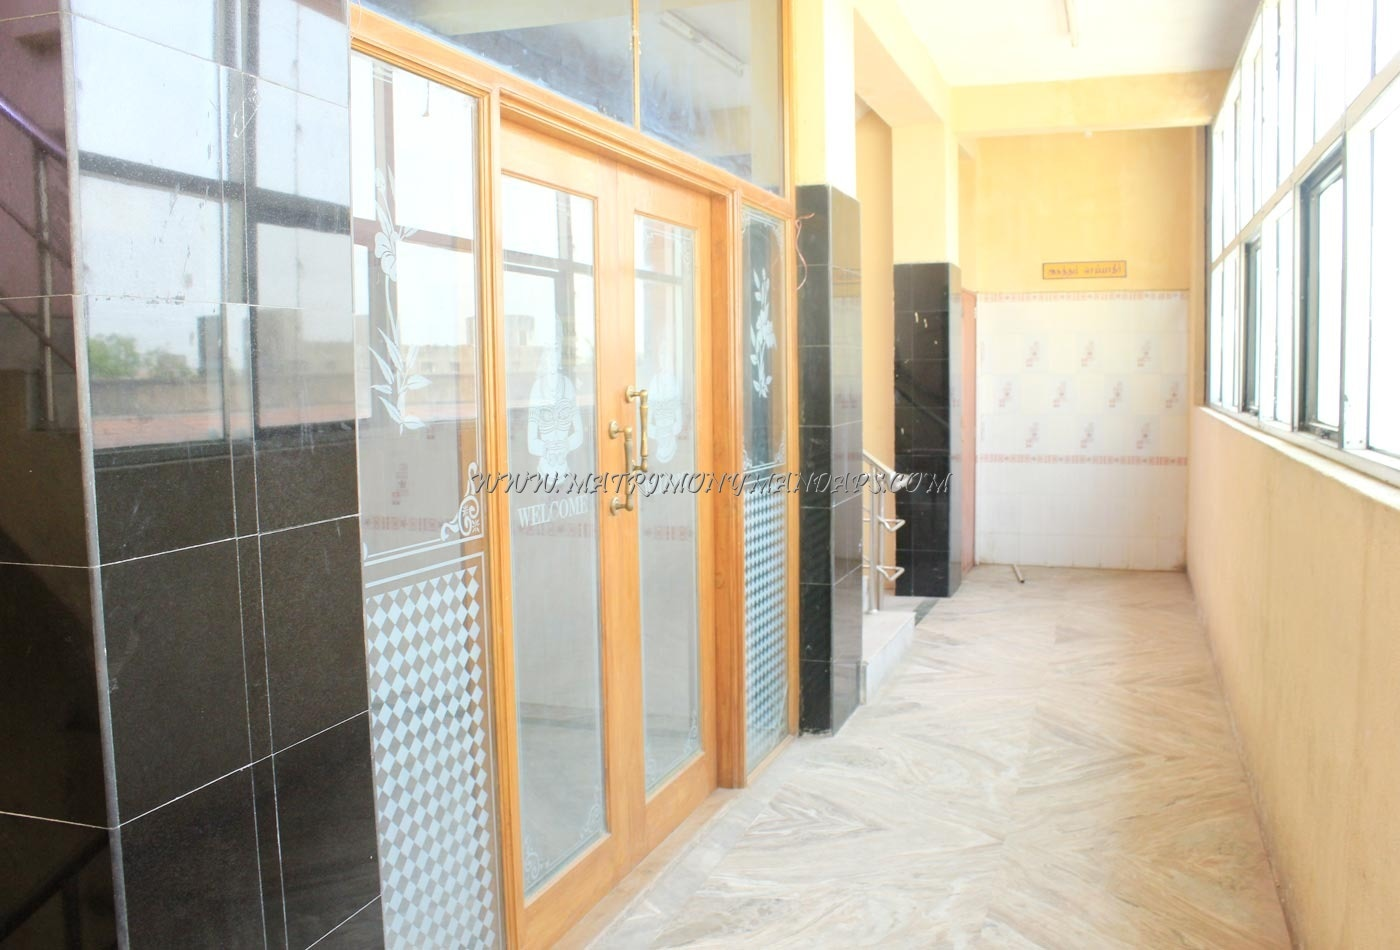 Find the availability of the VS Mahal in Thiruverkadu, Chennai and avail special offers